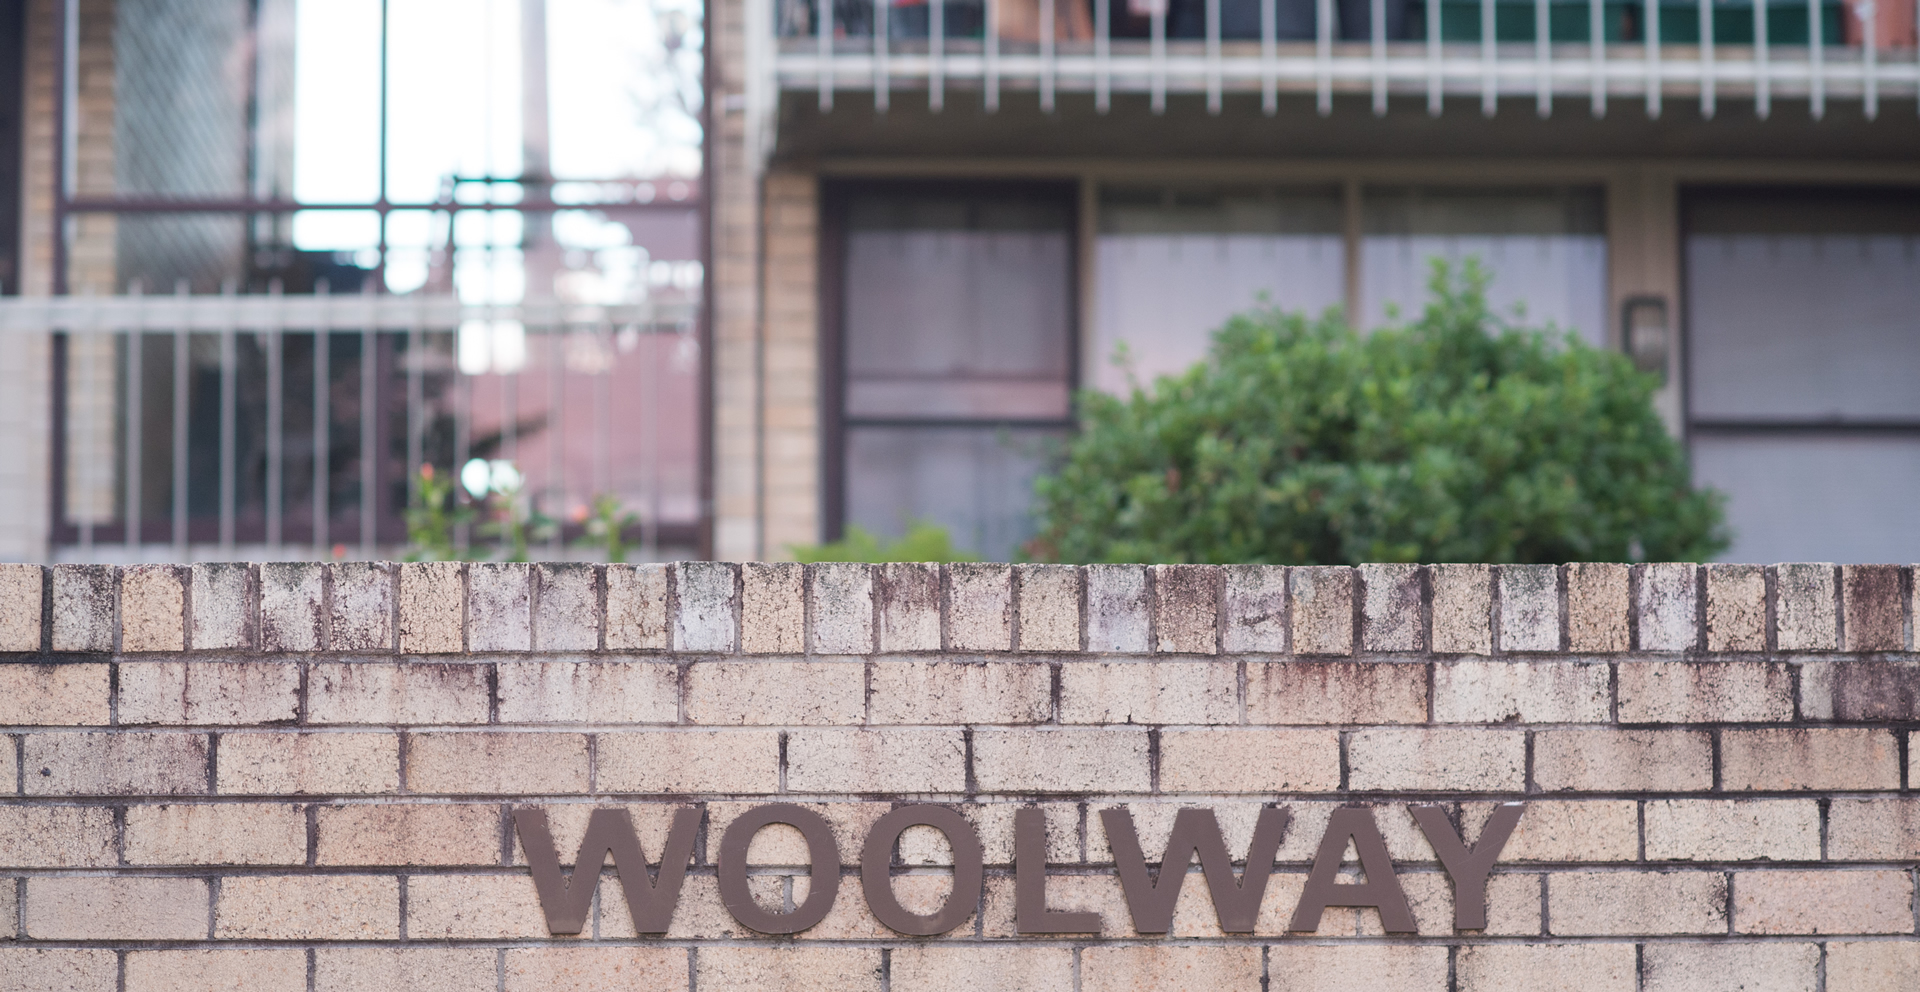 Woolway Sign on Brick Wall